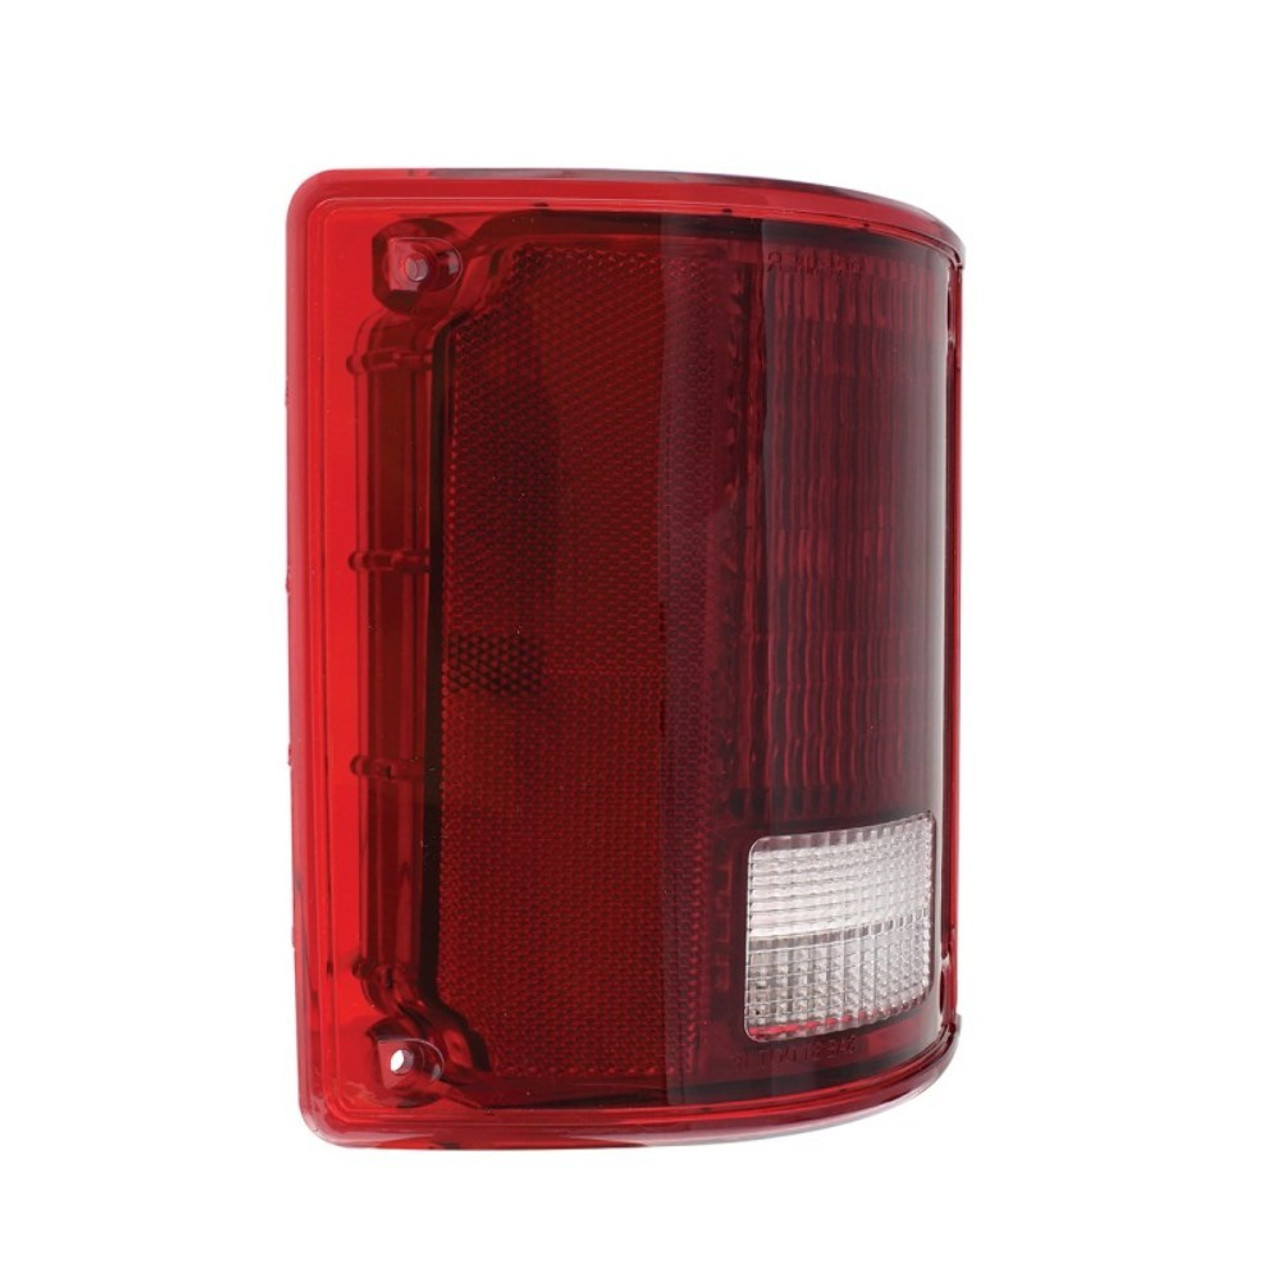 (2) 1973-87 Chevy GMC Truck LED Sequential Tail Lights with Flasher W/O Trim, Pair